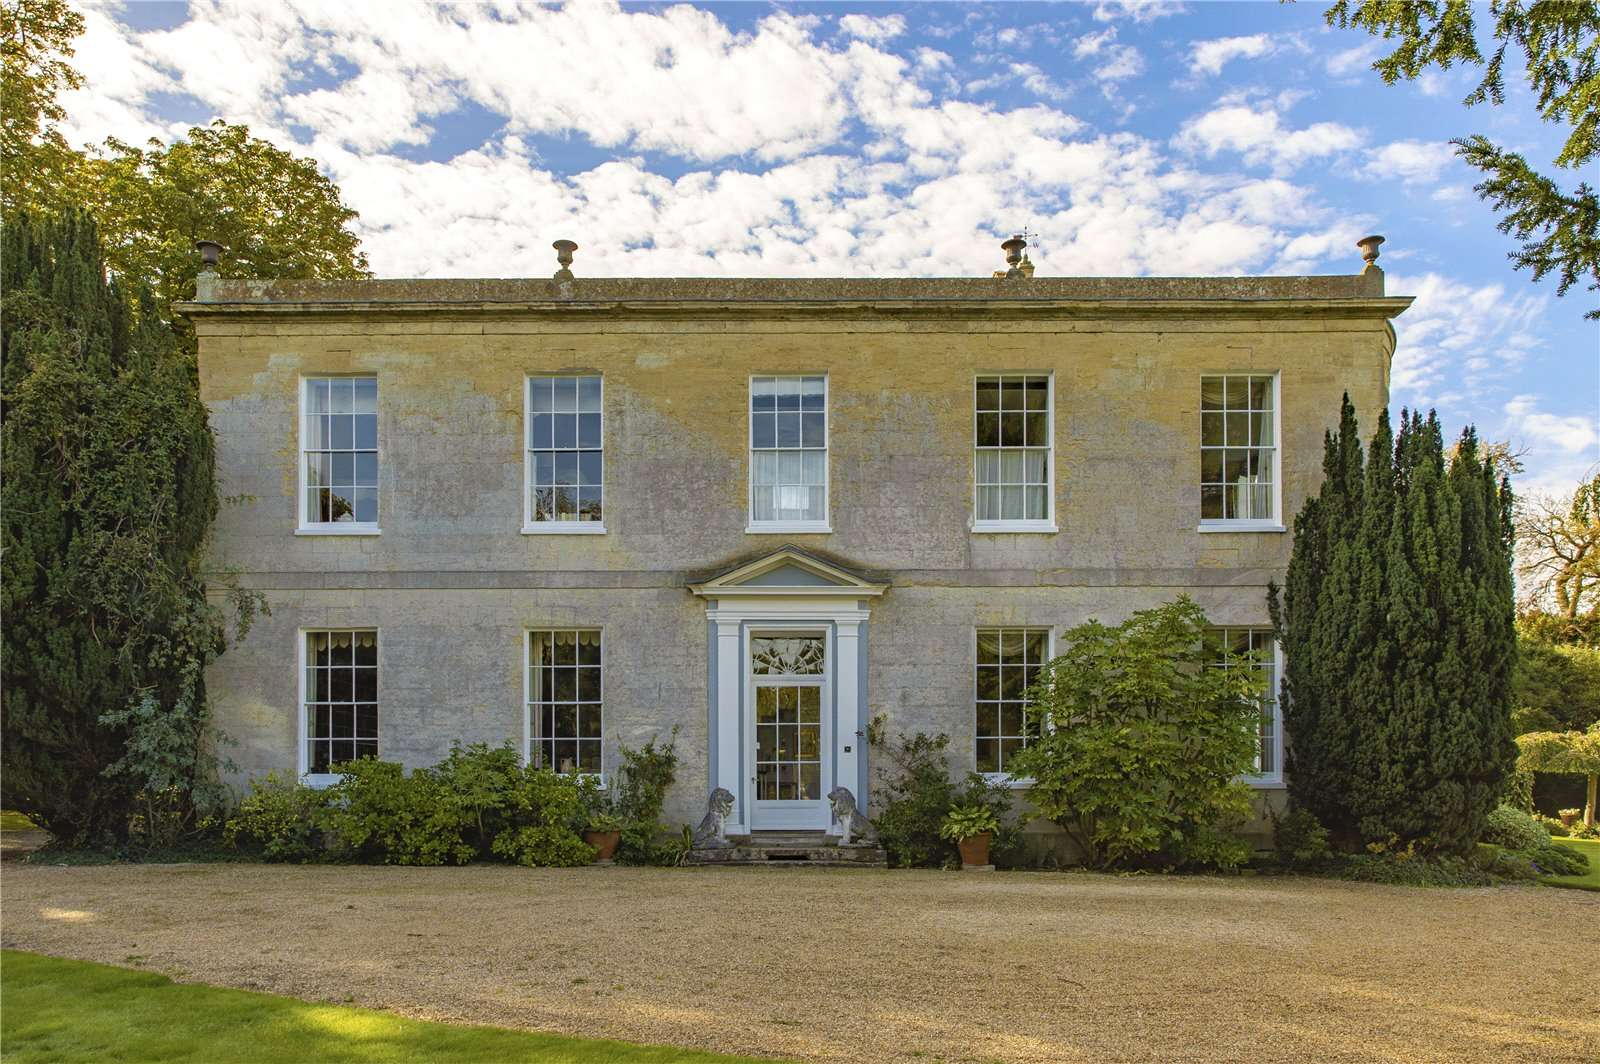 Beauforest House, Wallingford - Image Gallery 01 - Front of House